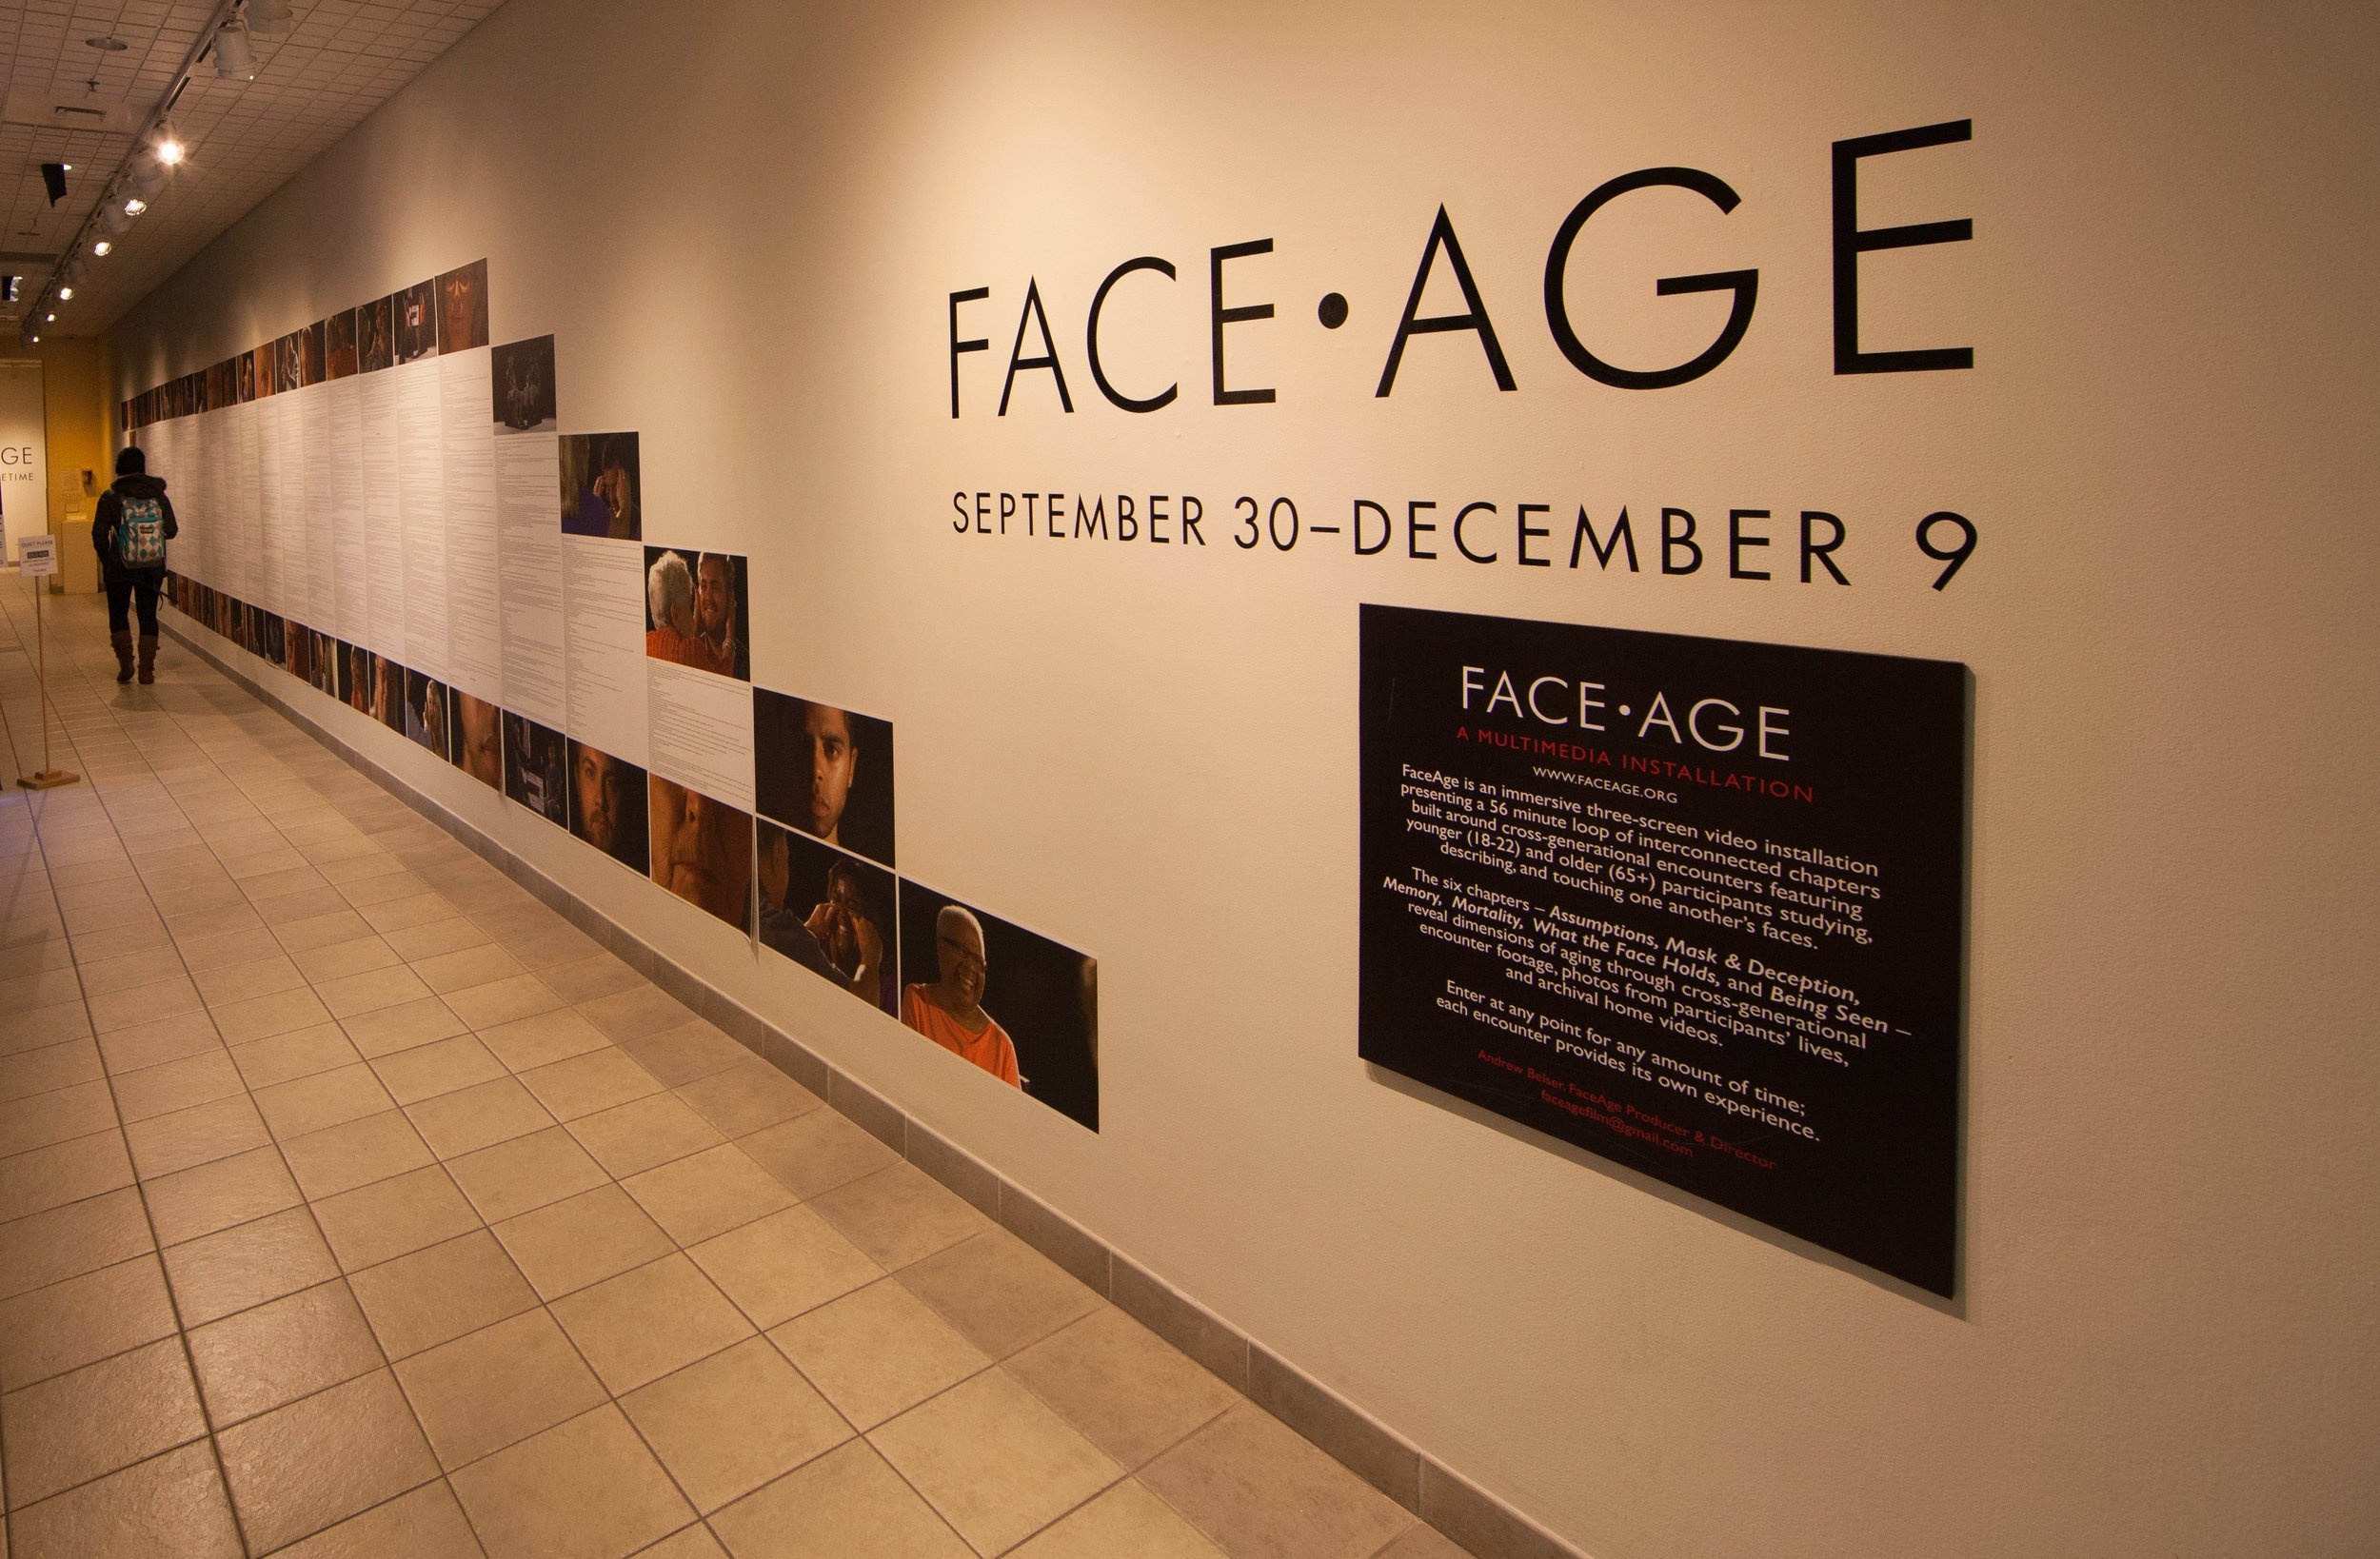 the entire FaceAge transcript is part of the exhibition